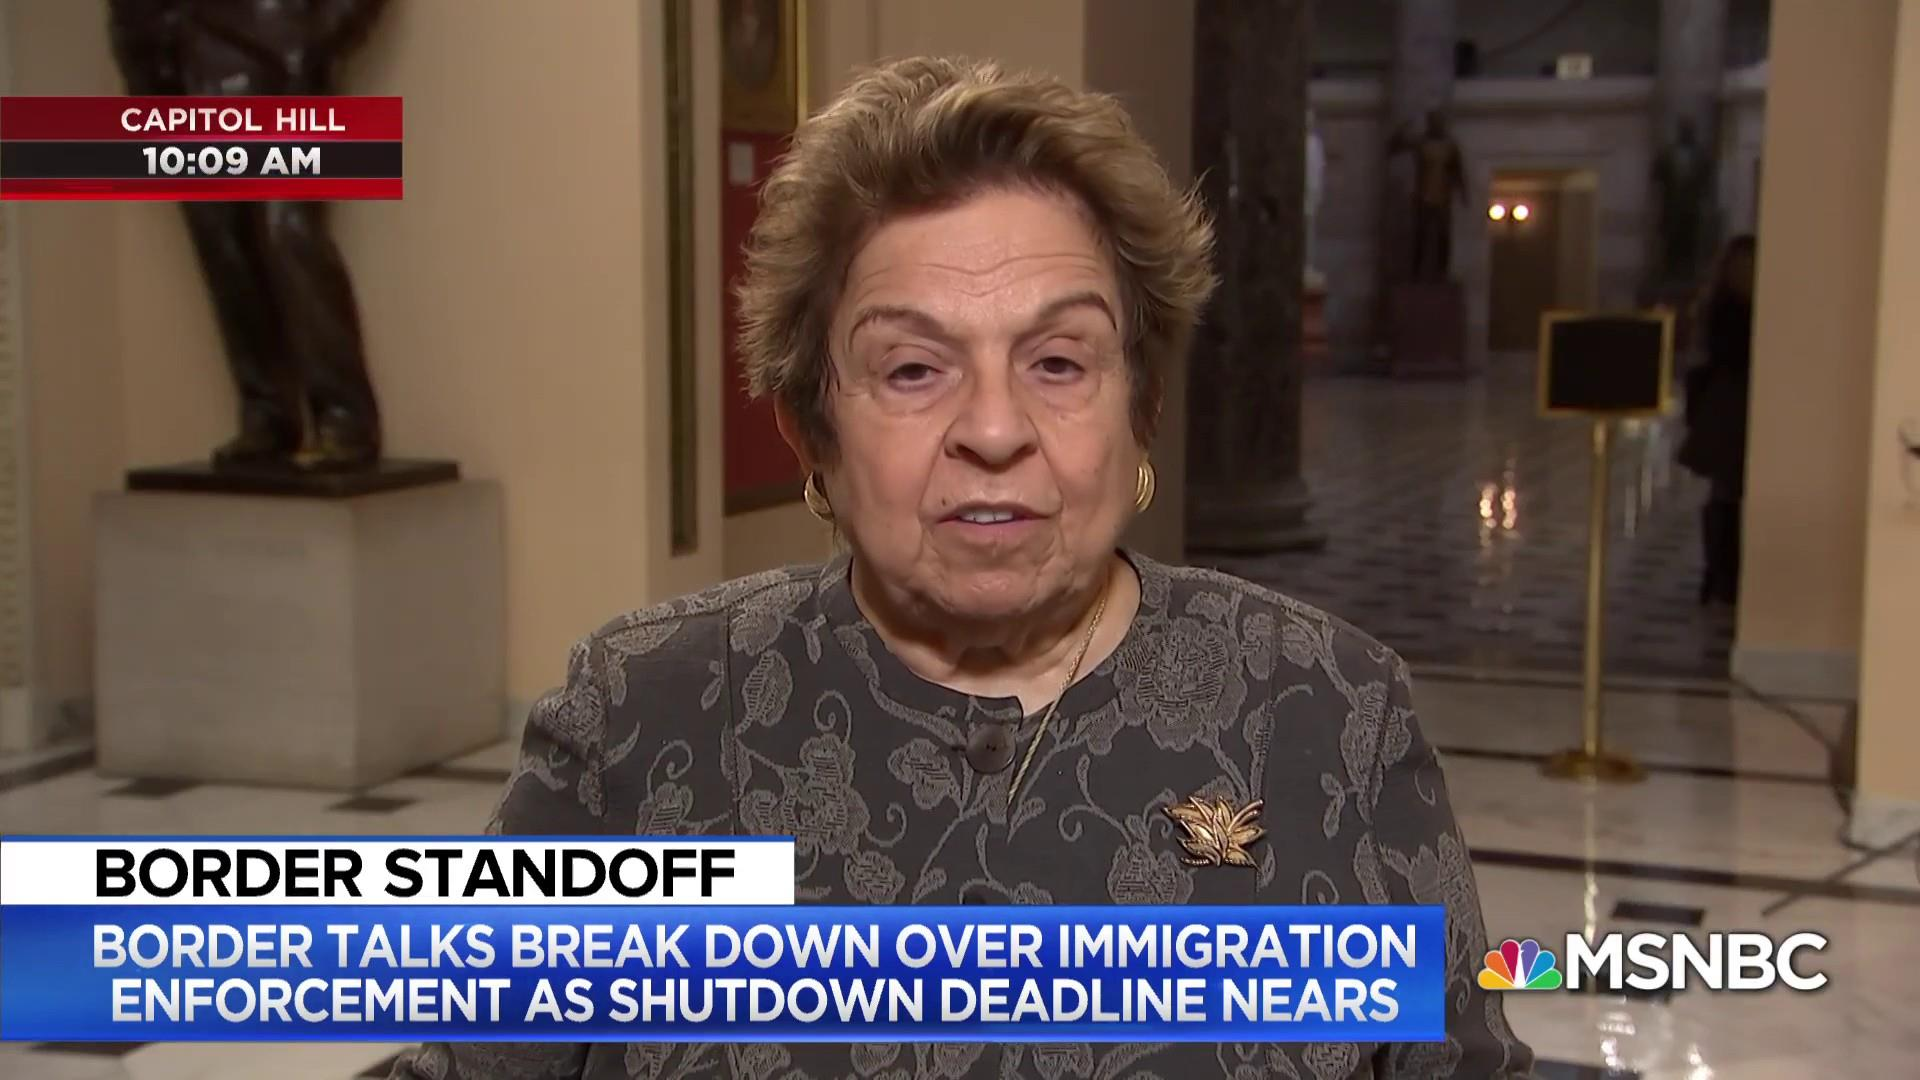 Rep. Shalala: 'It's both parties that now have to negotiate an agreement'